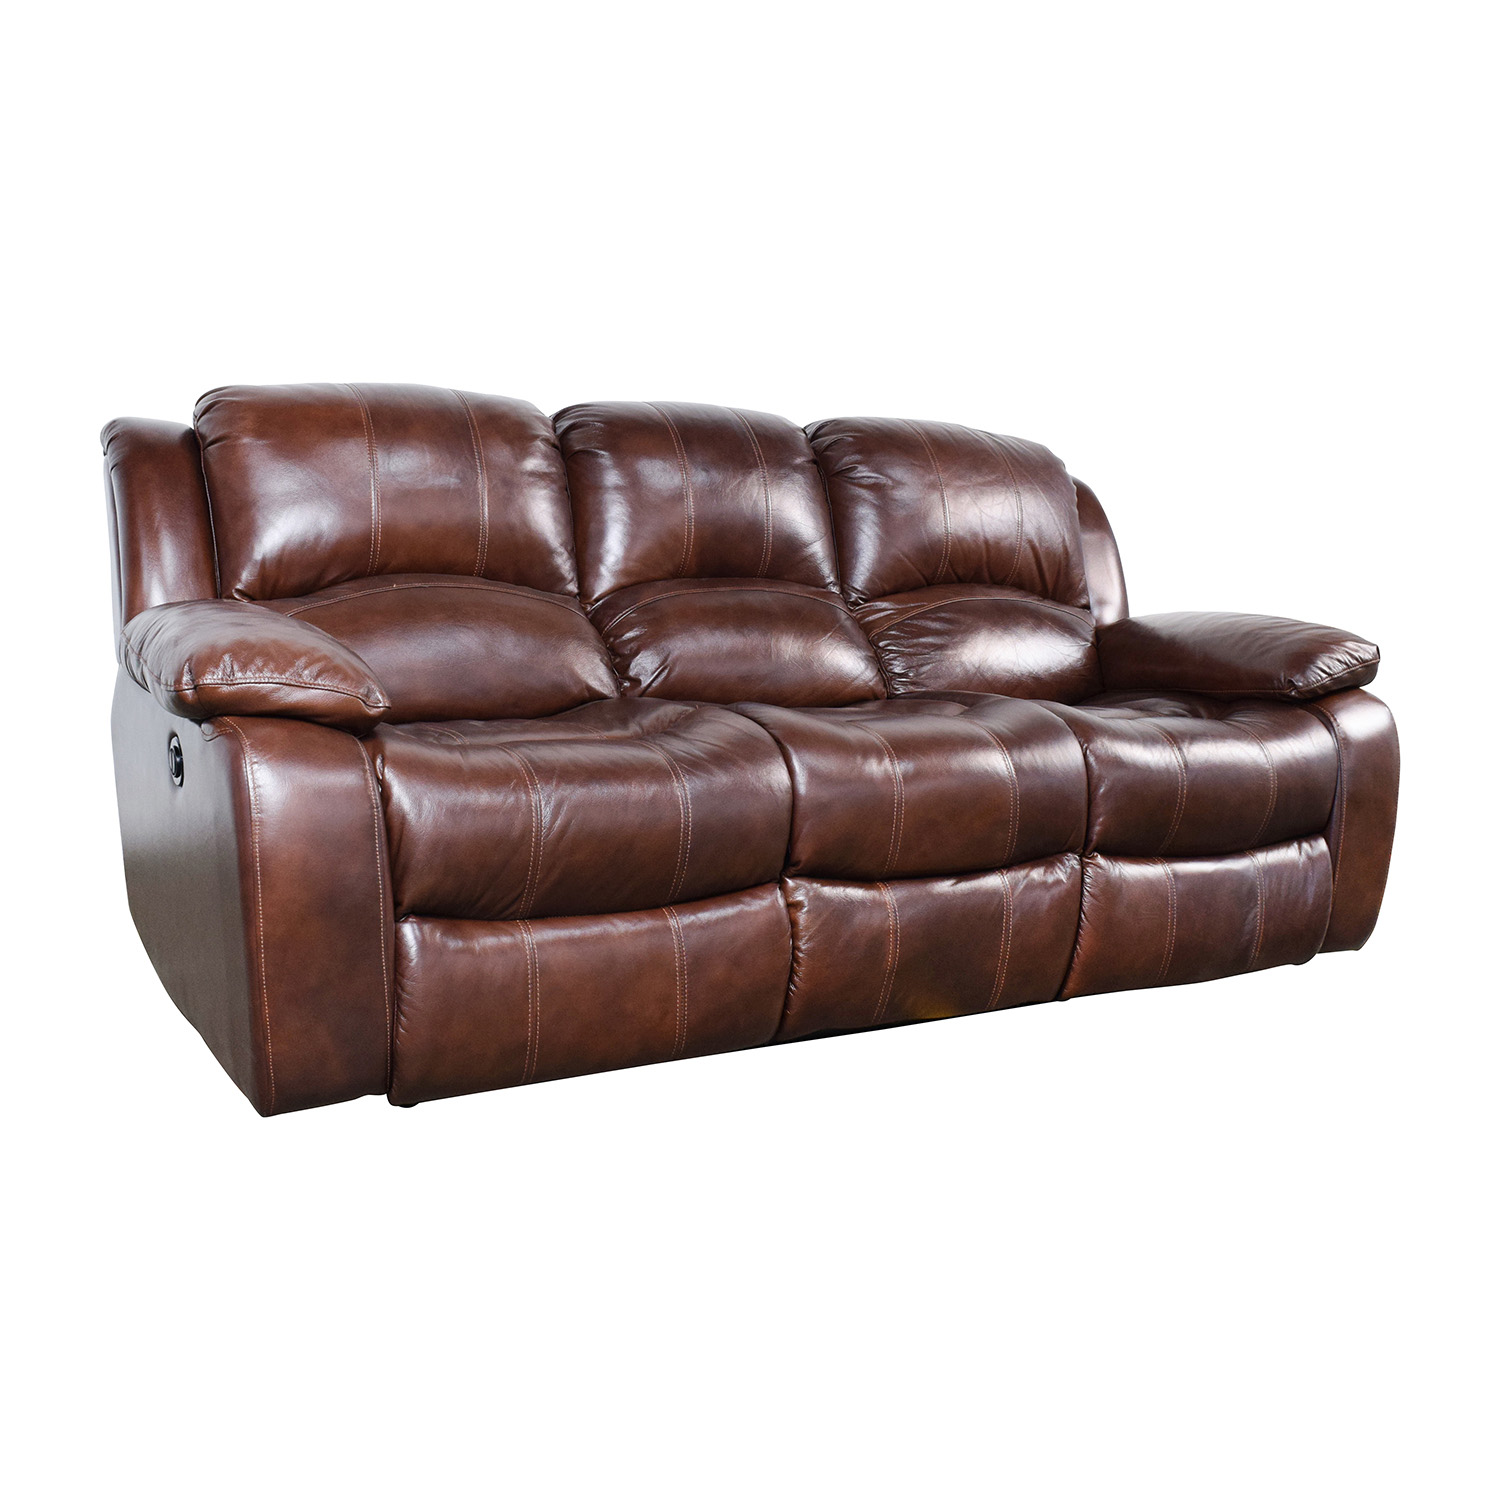 deacon leather power reclining sofa reviews small black bryant ii www